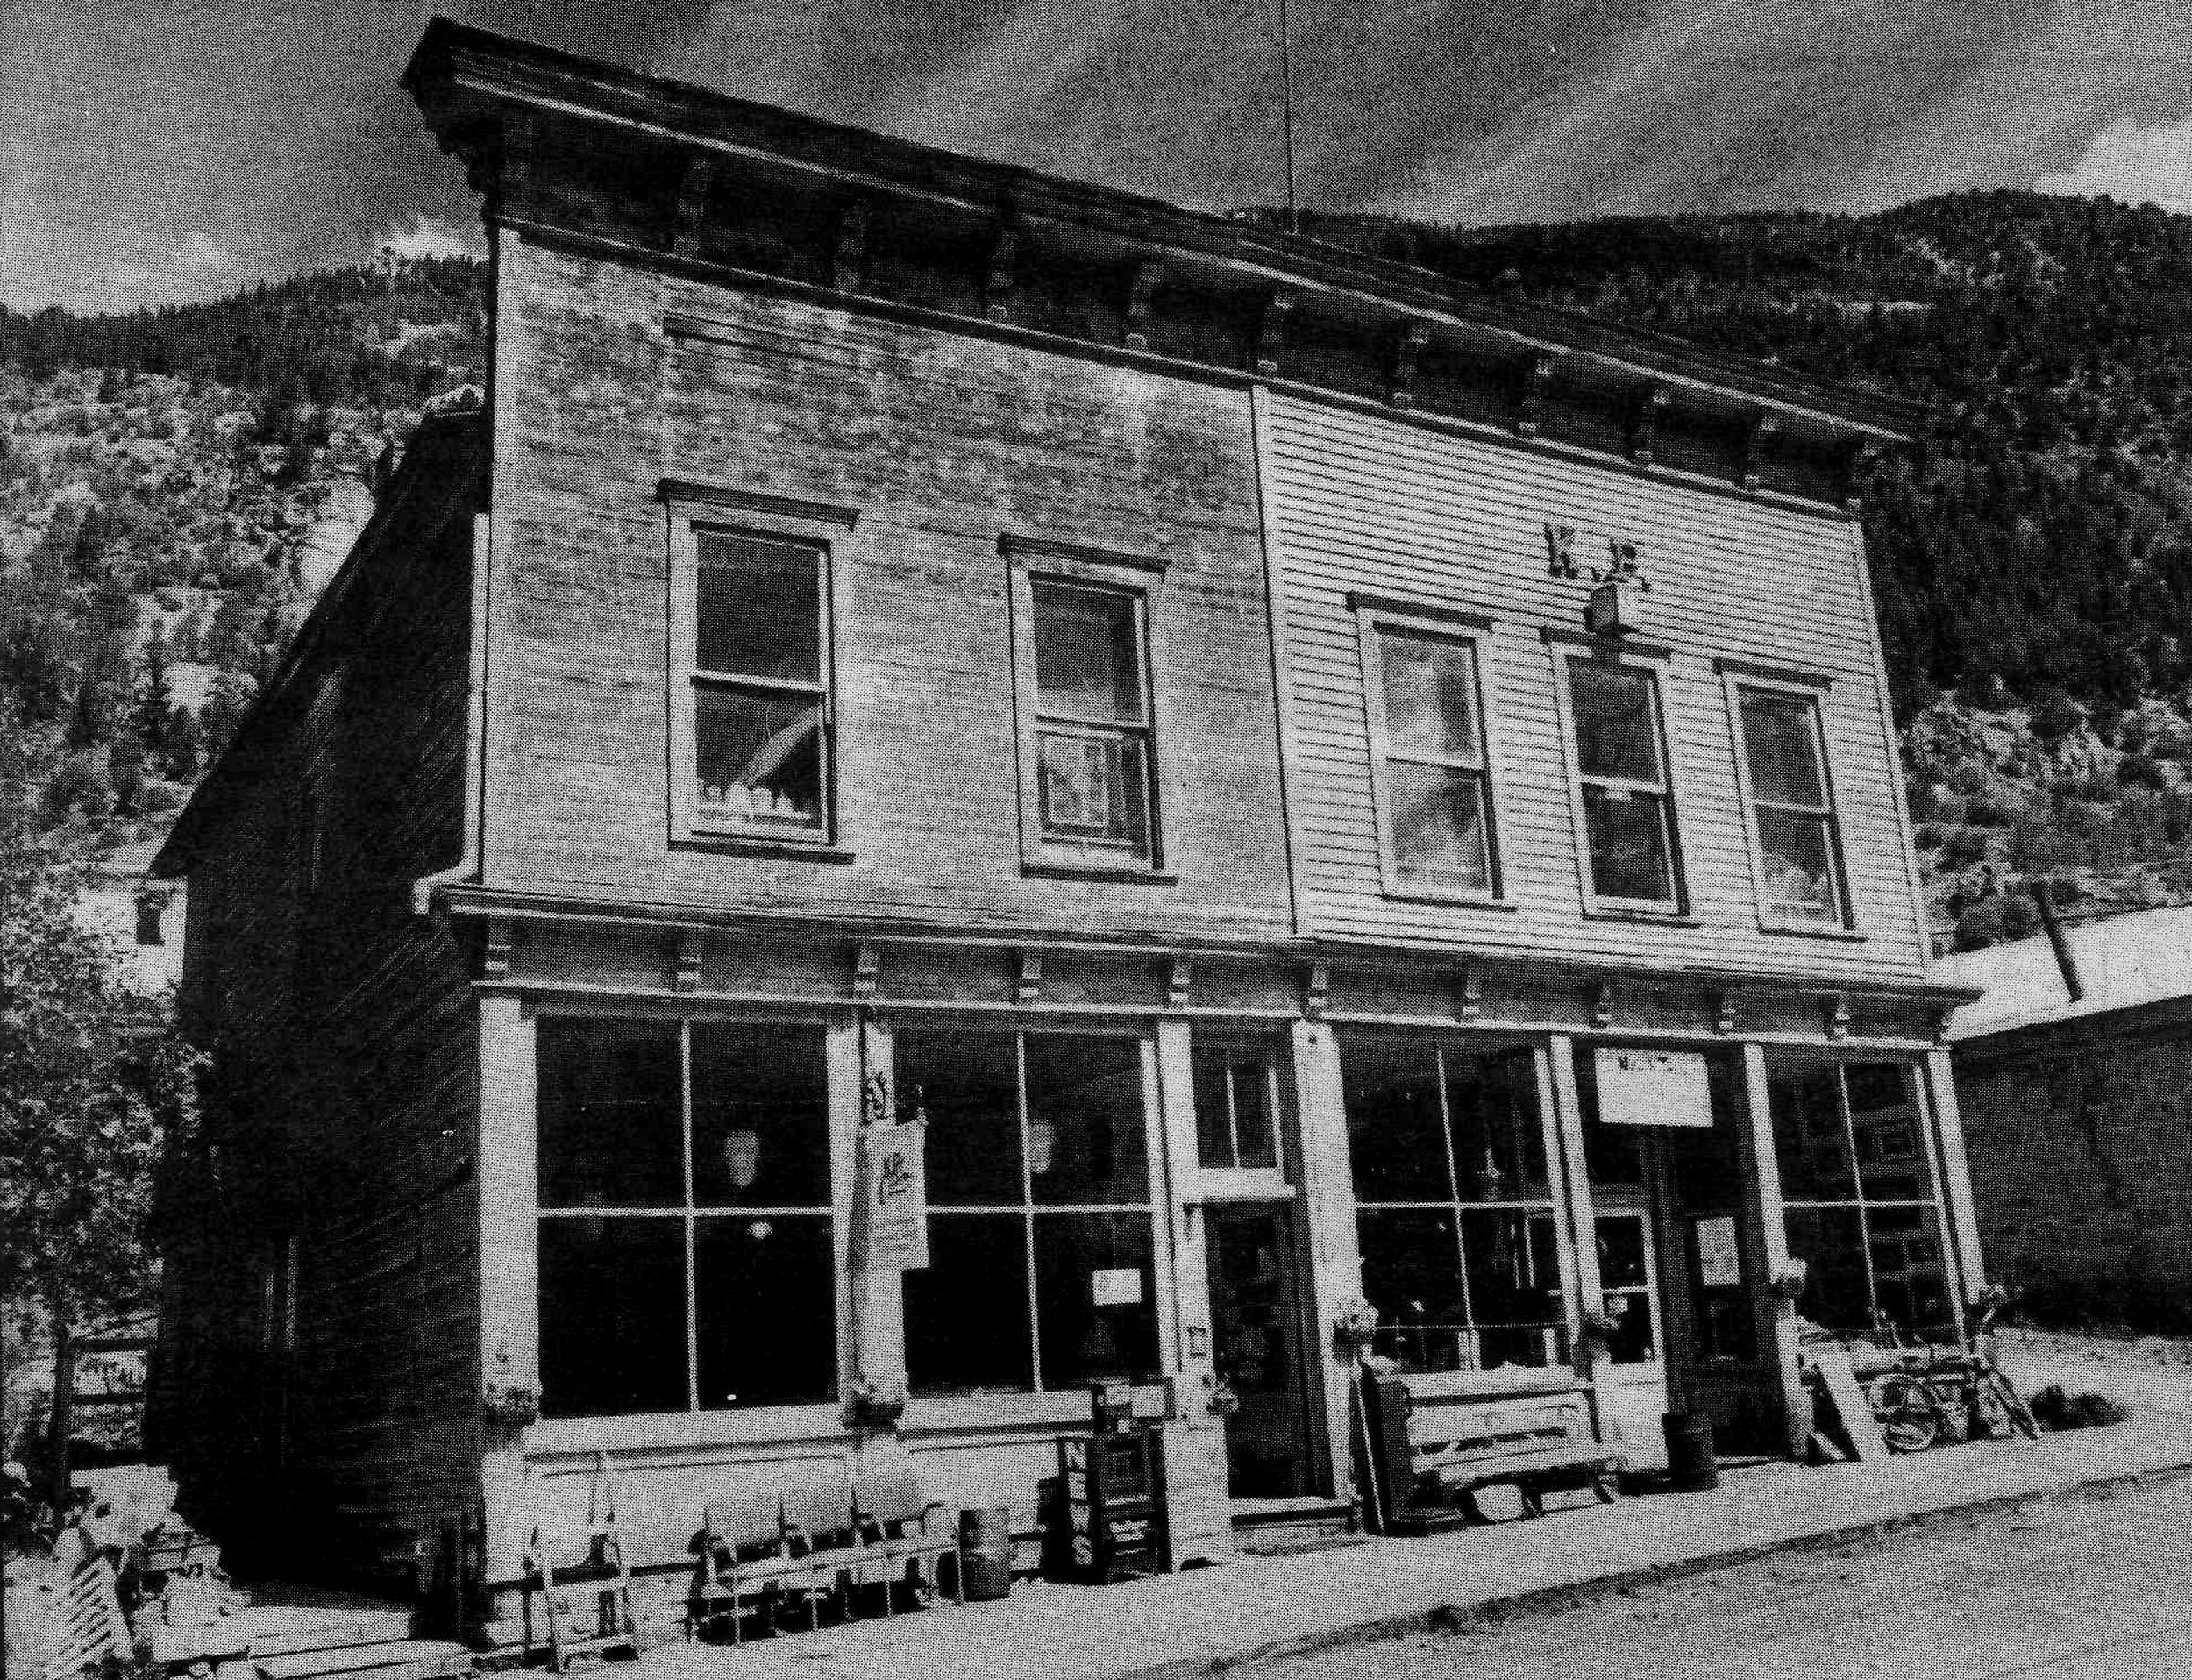 Keith Reinhard's abandoned antique shop in Silver Plume, Colorado - Courtesy of The Daily Herald